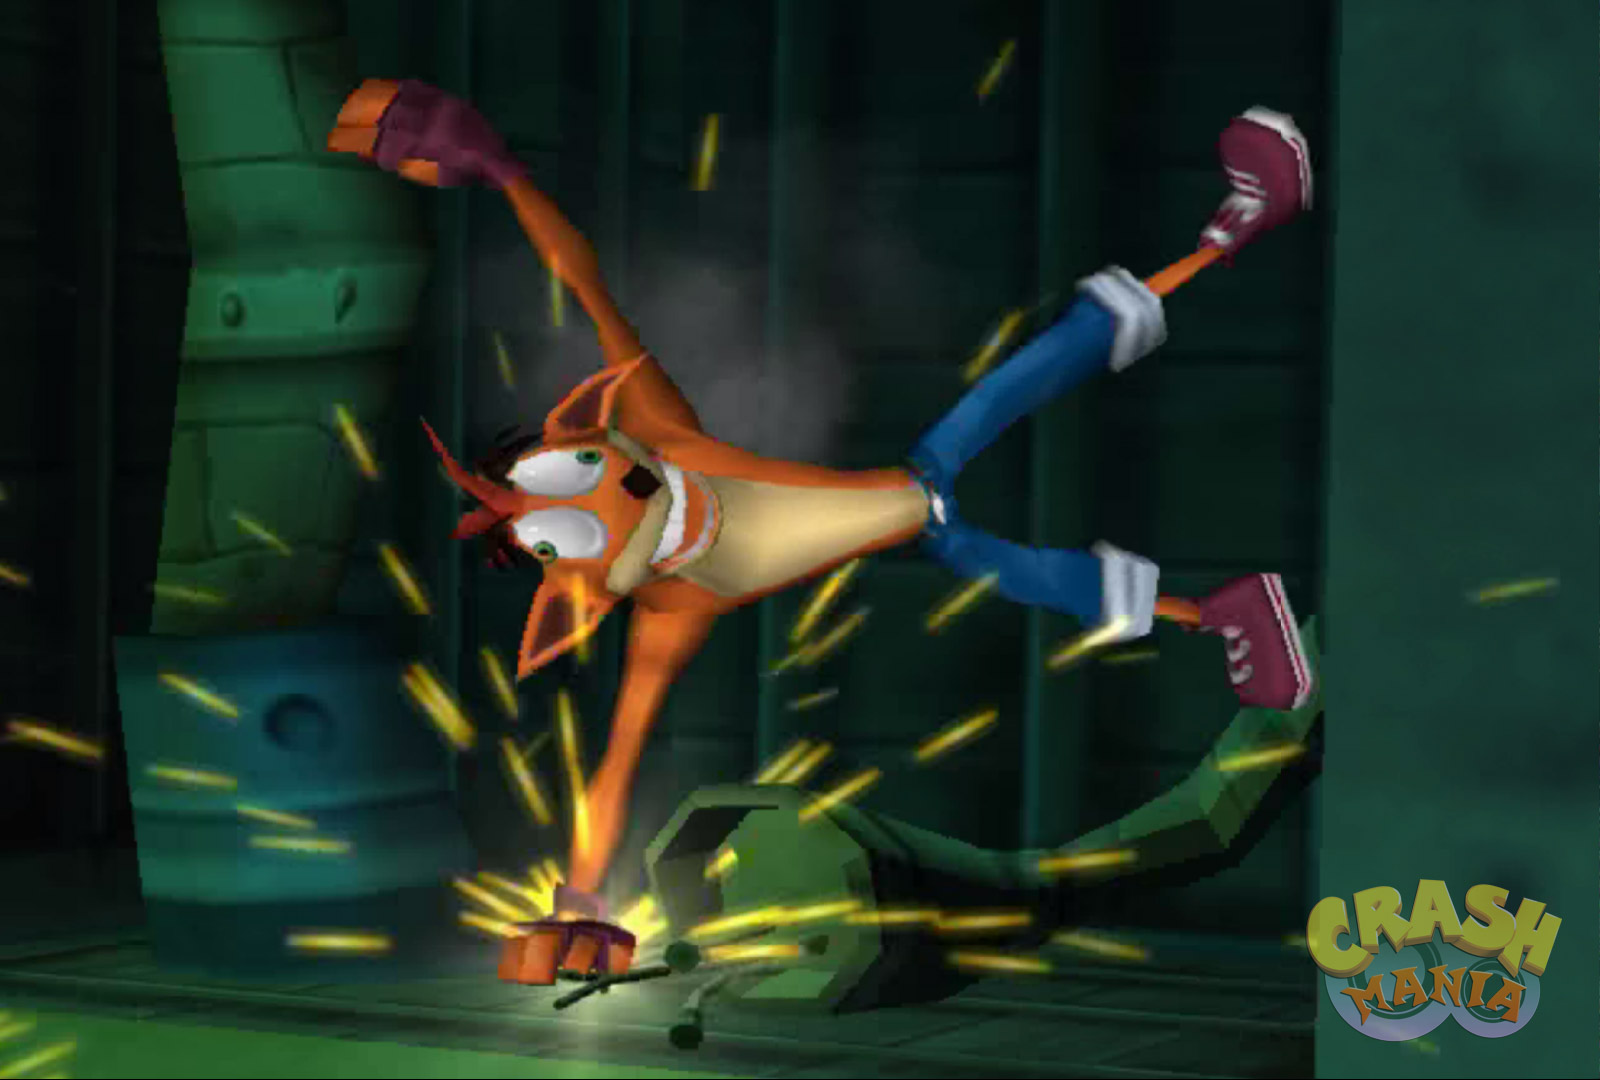 Crash touches an electric cable and gets shocked.